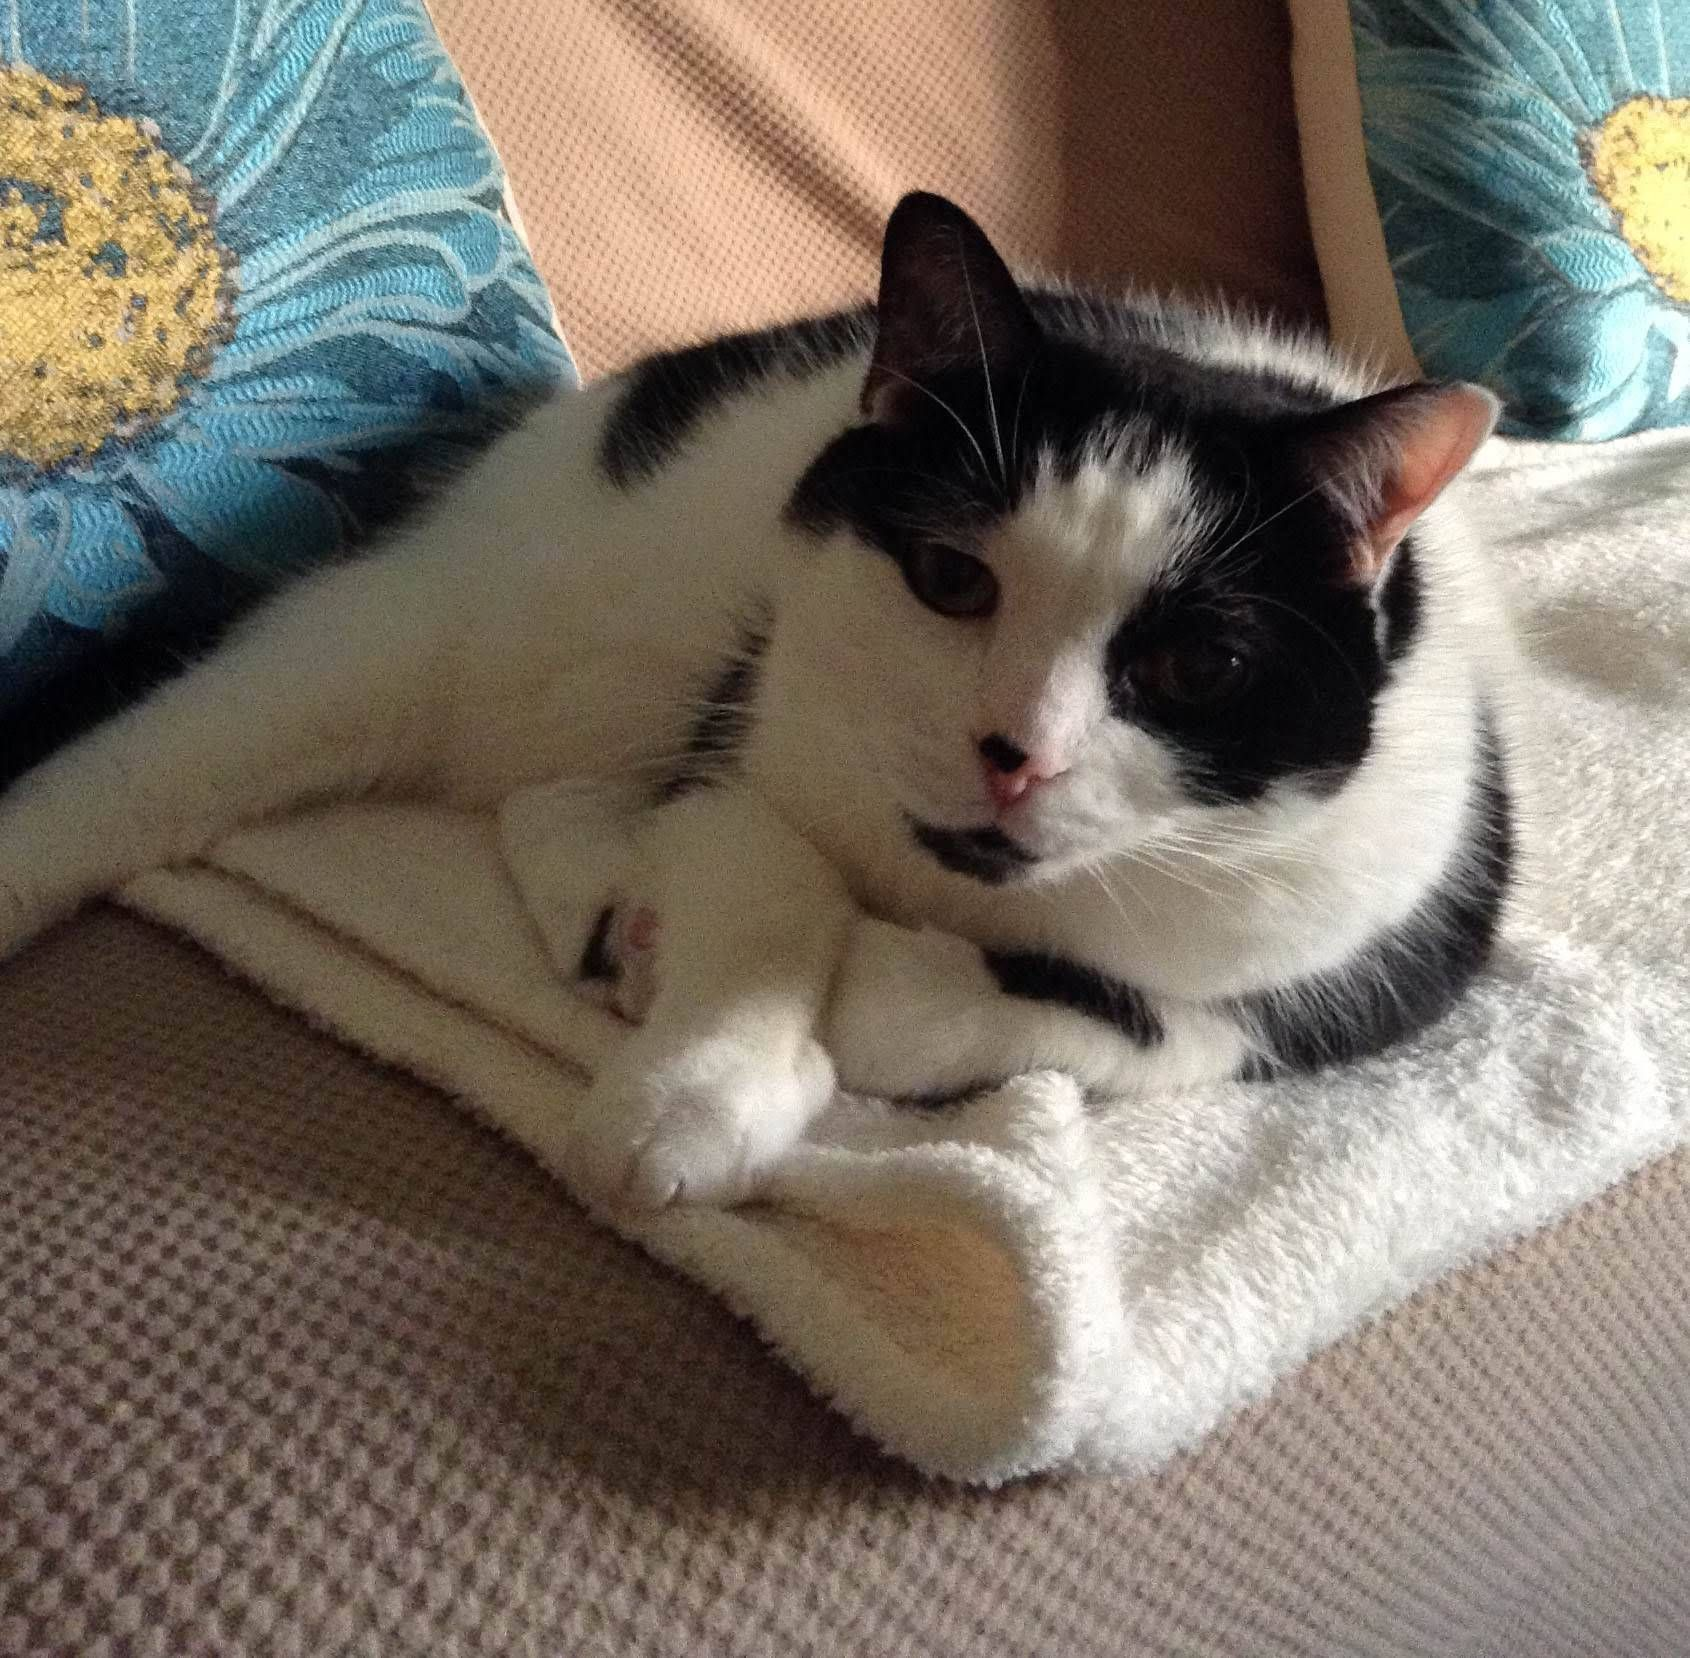 Mookie's Year With Kidney Disease Pet news, Your pet